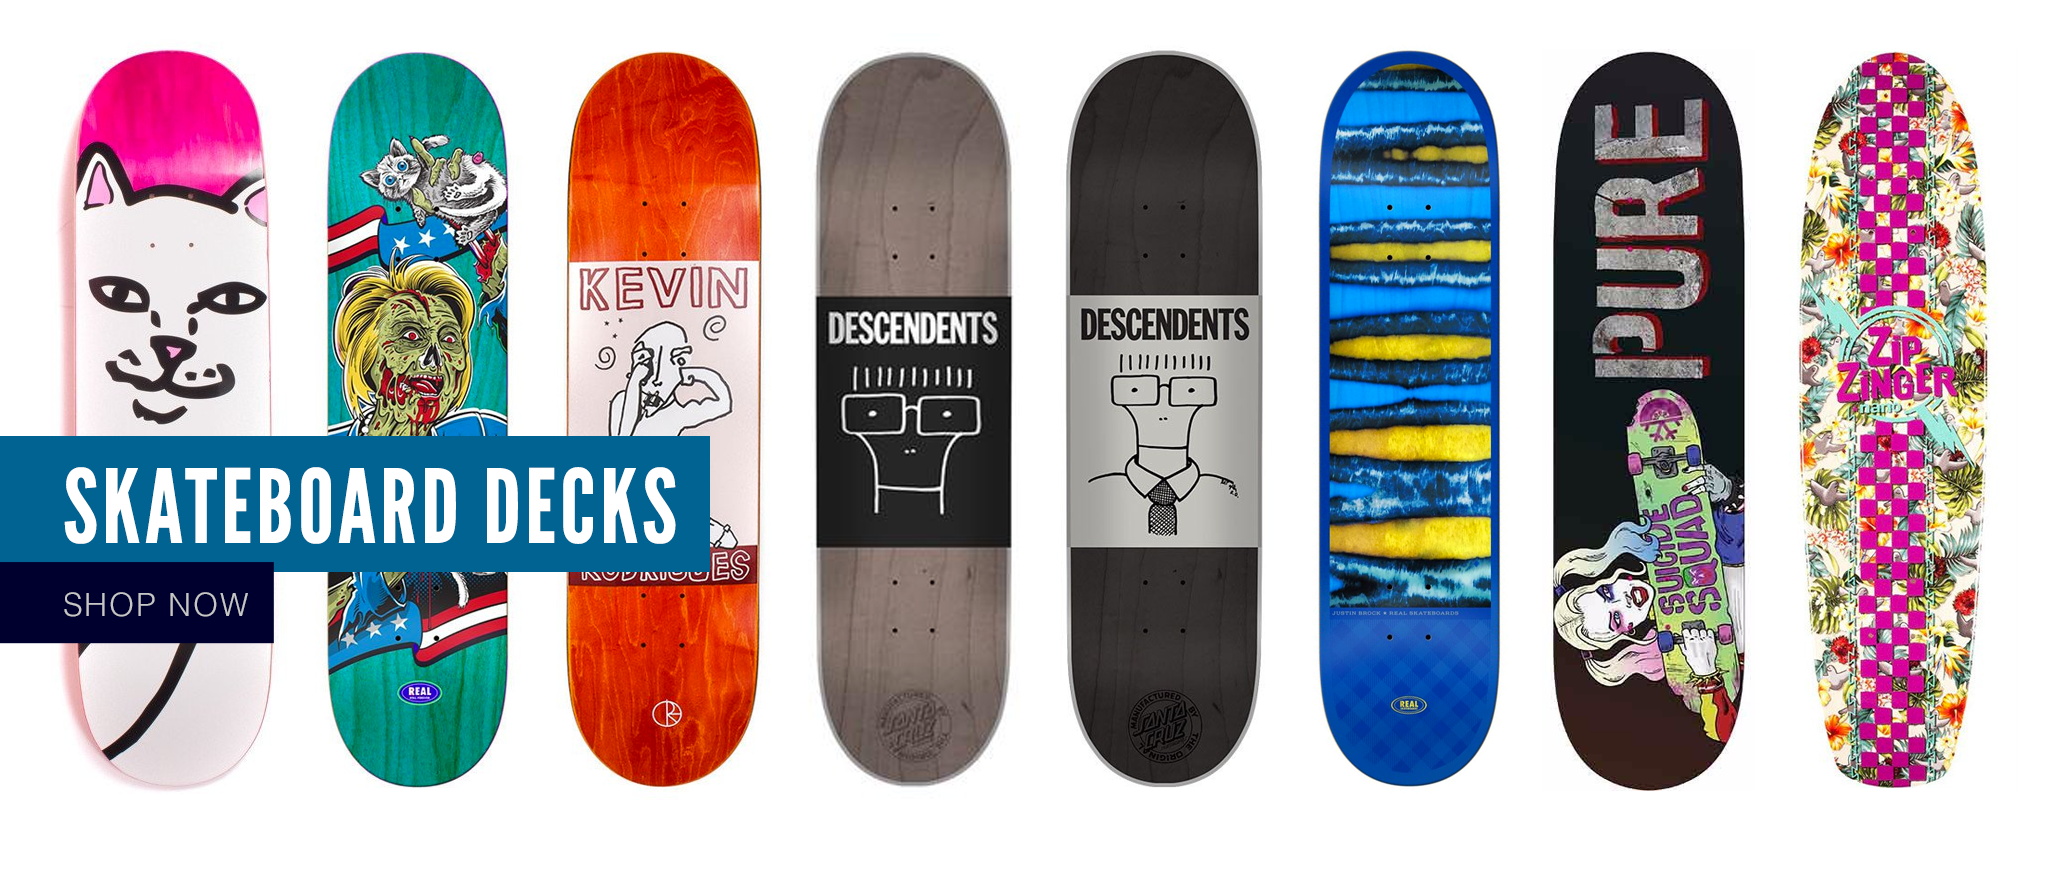 Skateboard decks from Real, Polar, Convoy, Santa Cruz, Element, RIPNDIP and more